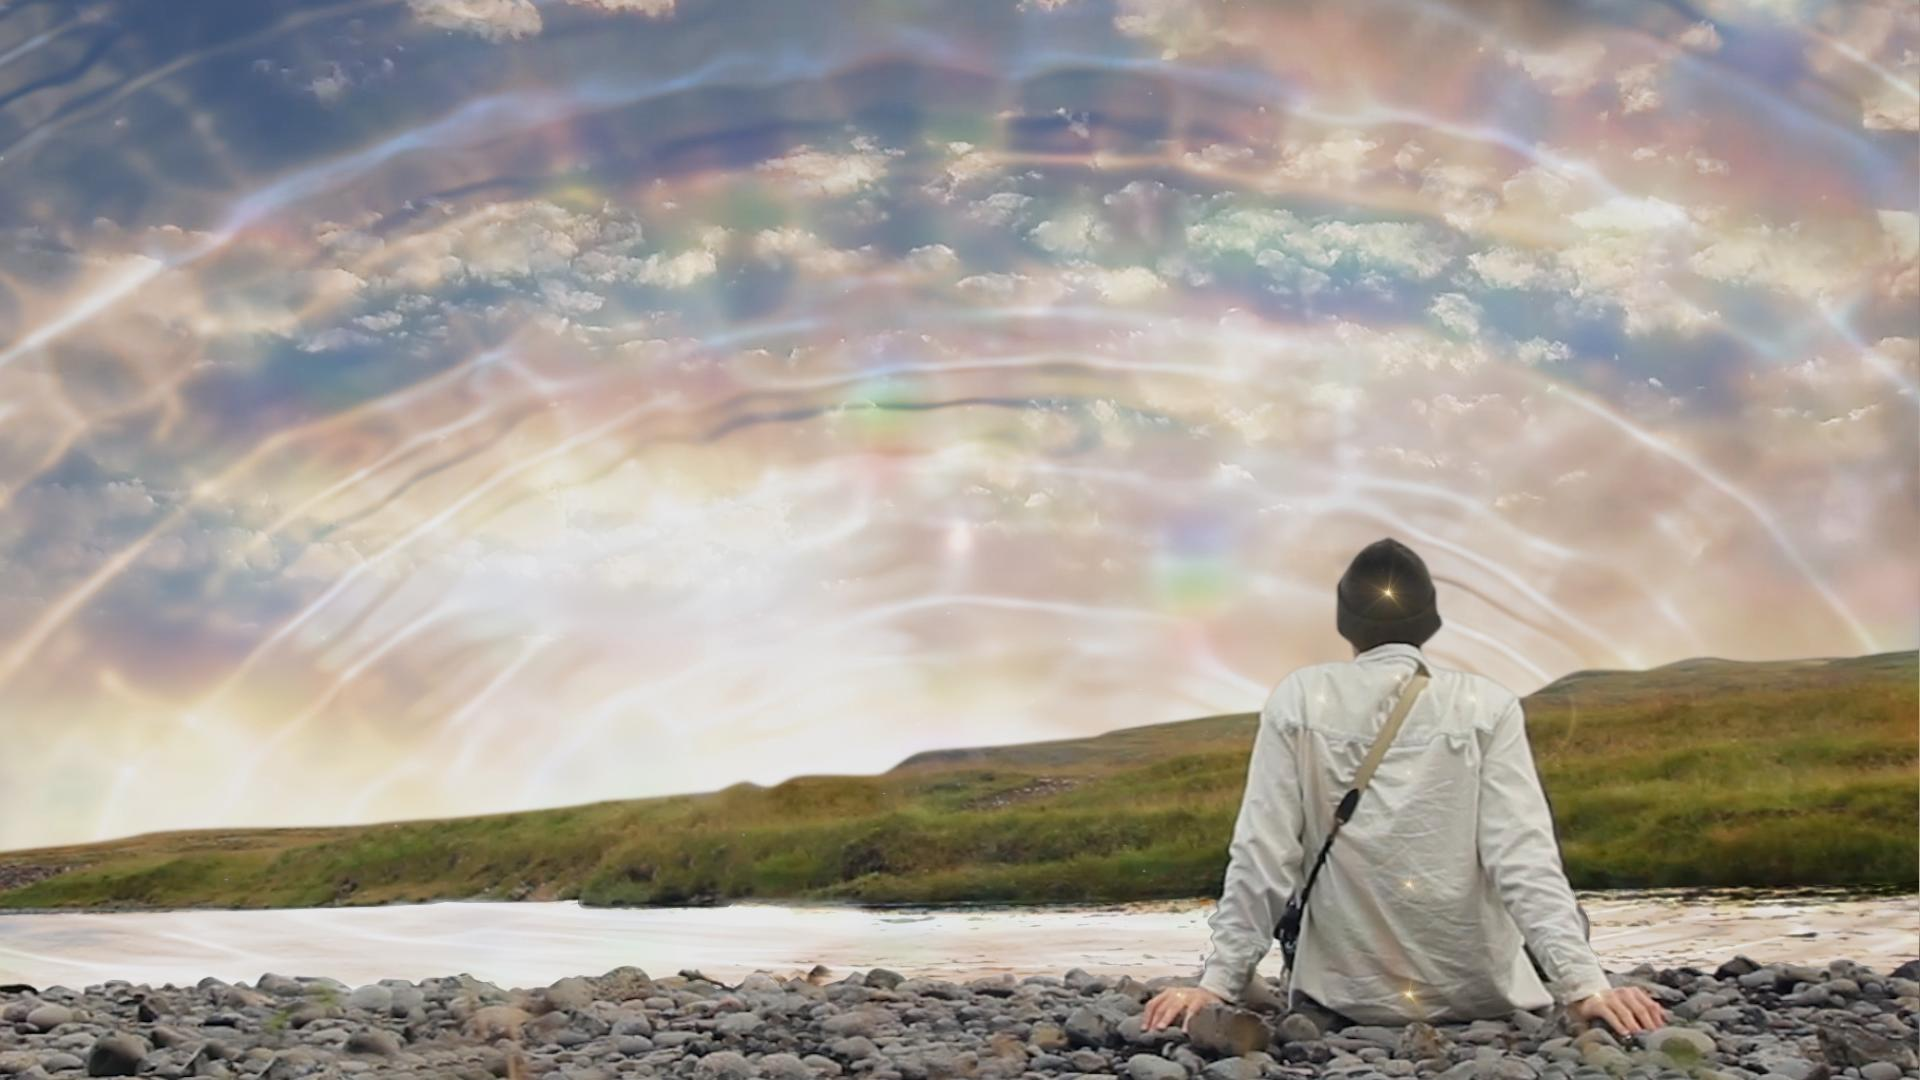 watch The Way of the Psychonaut: Stanislav Grof's Journey of Consciousness on soap2day